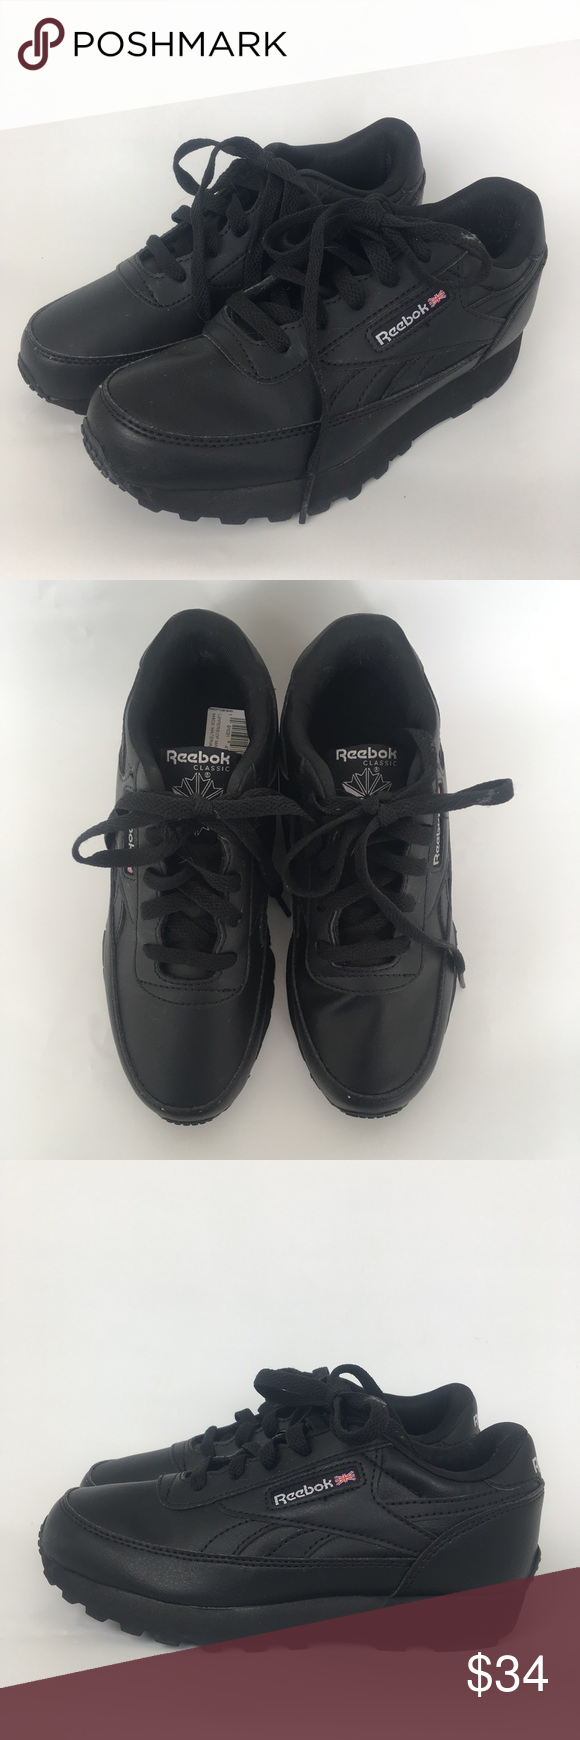 badcc1fd4293 Reebok classic sneakers kids size 1 Reebok classic kids sneakers -new  without tags -youth size 1 -Black color -lace up -rubber soles -unisex can  be used for ...